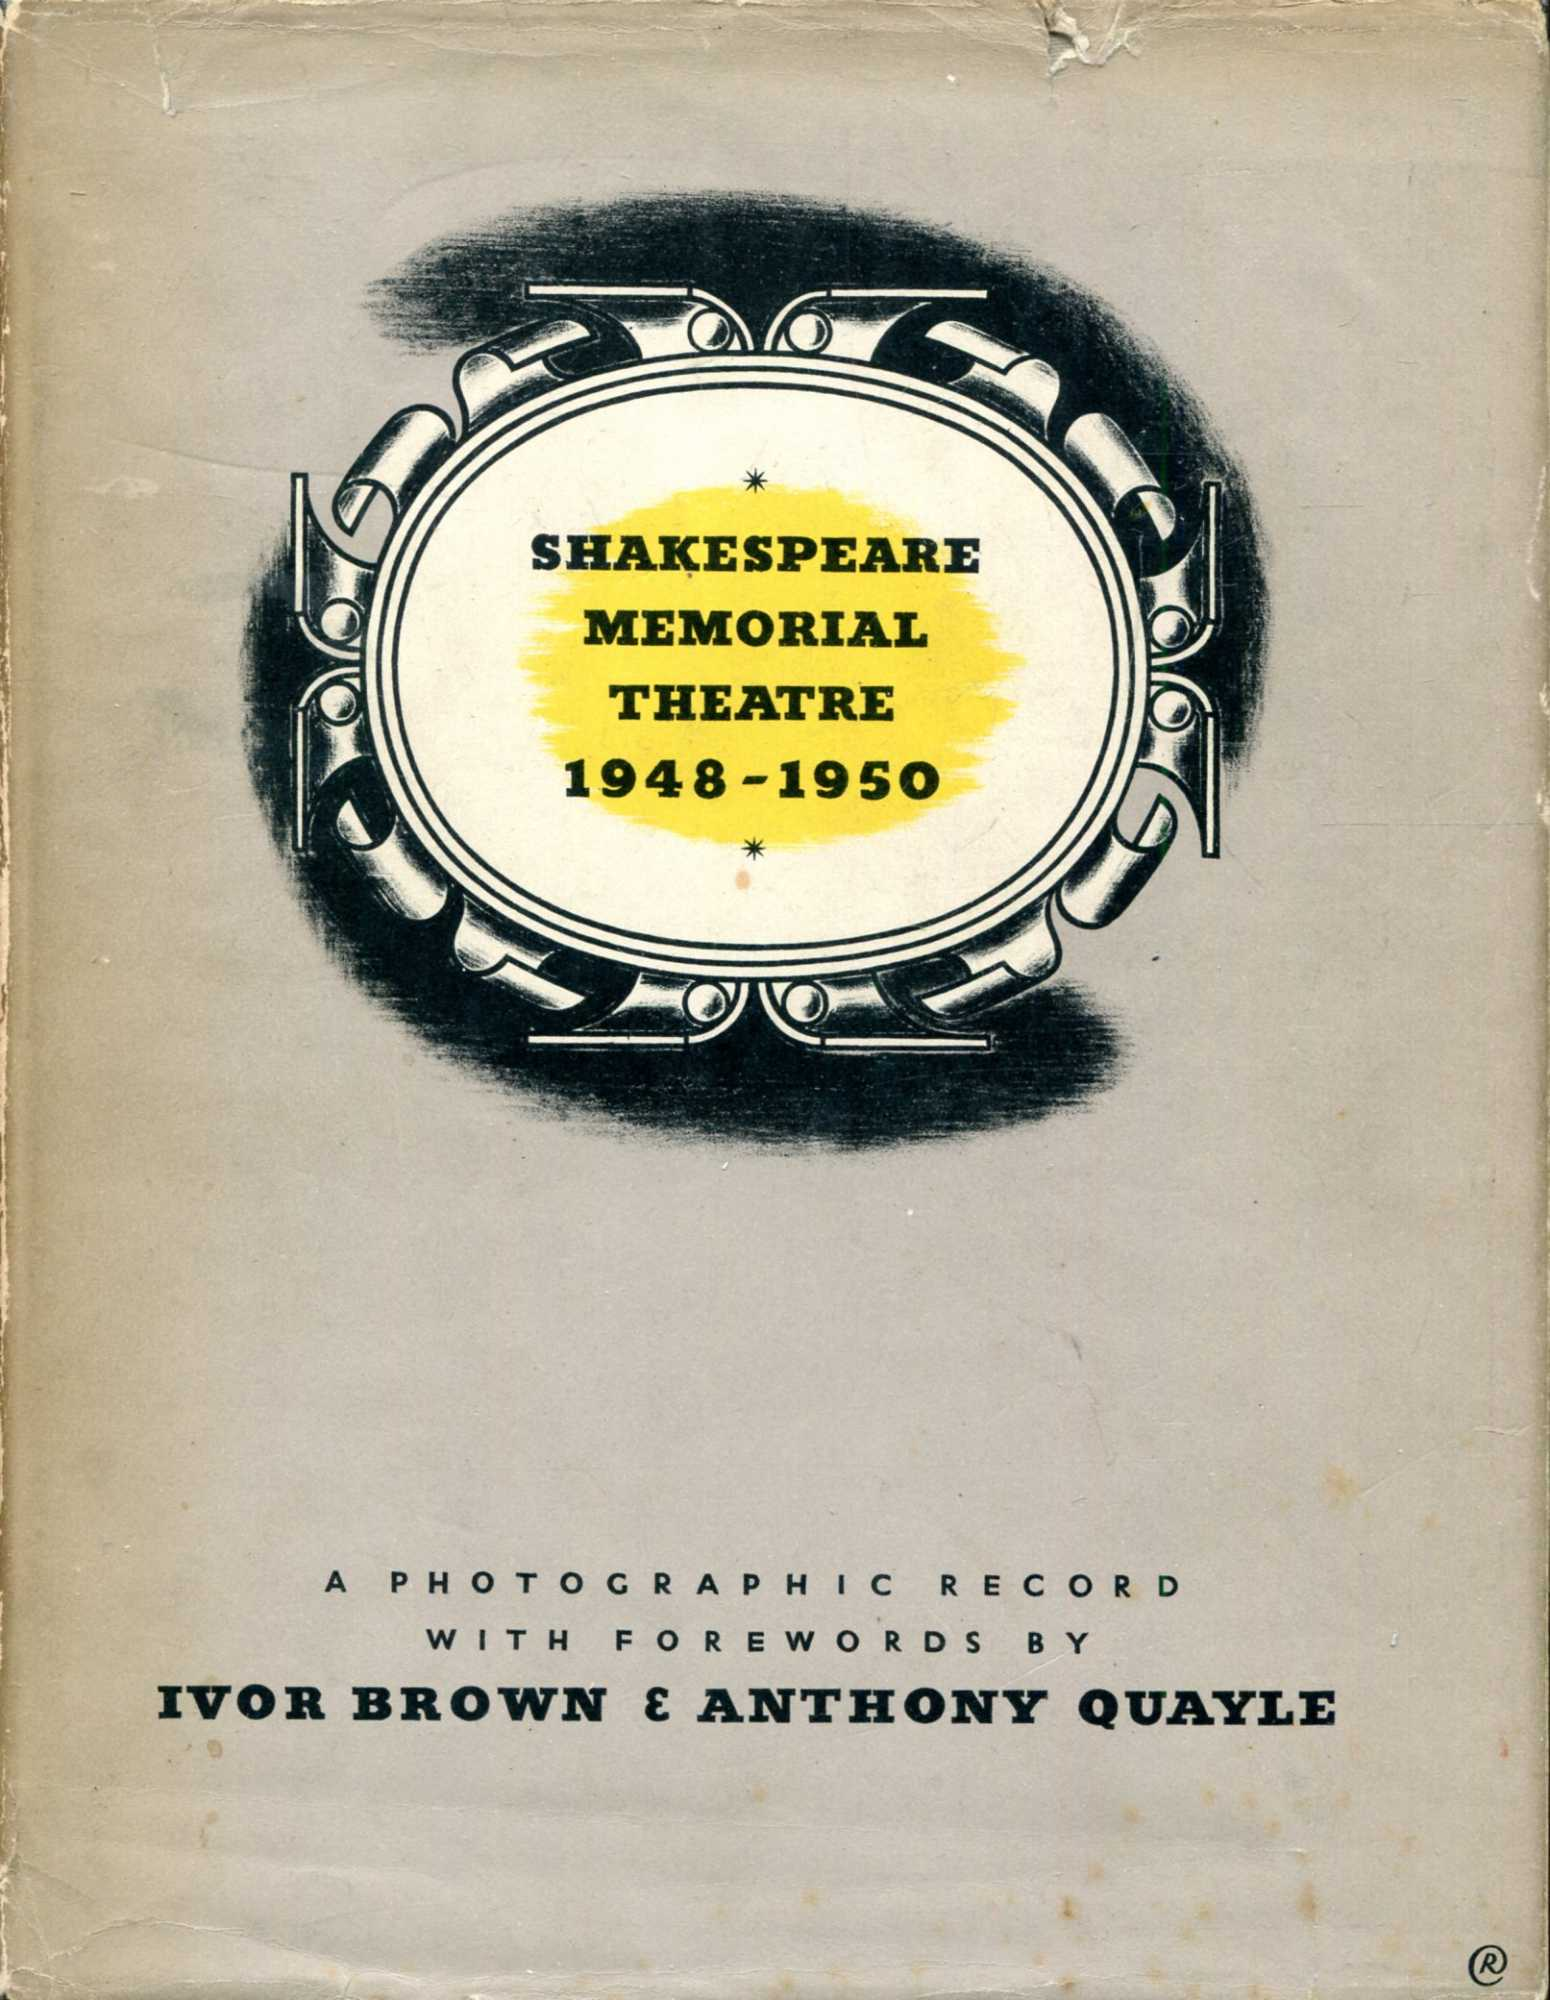 Image for Shakespeare Memorial Theatre 1948-1950, a photographic record